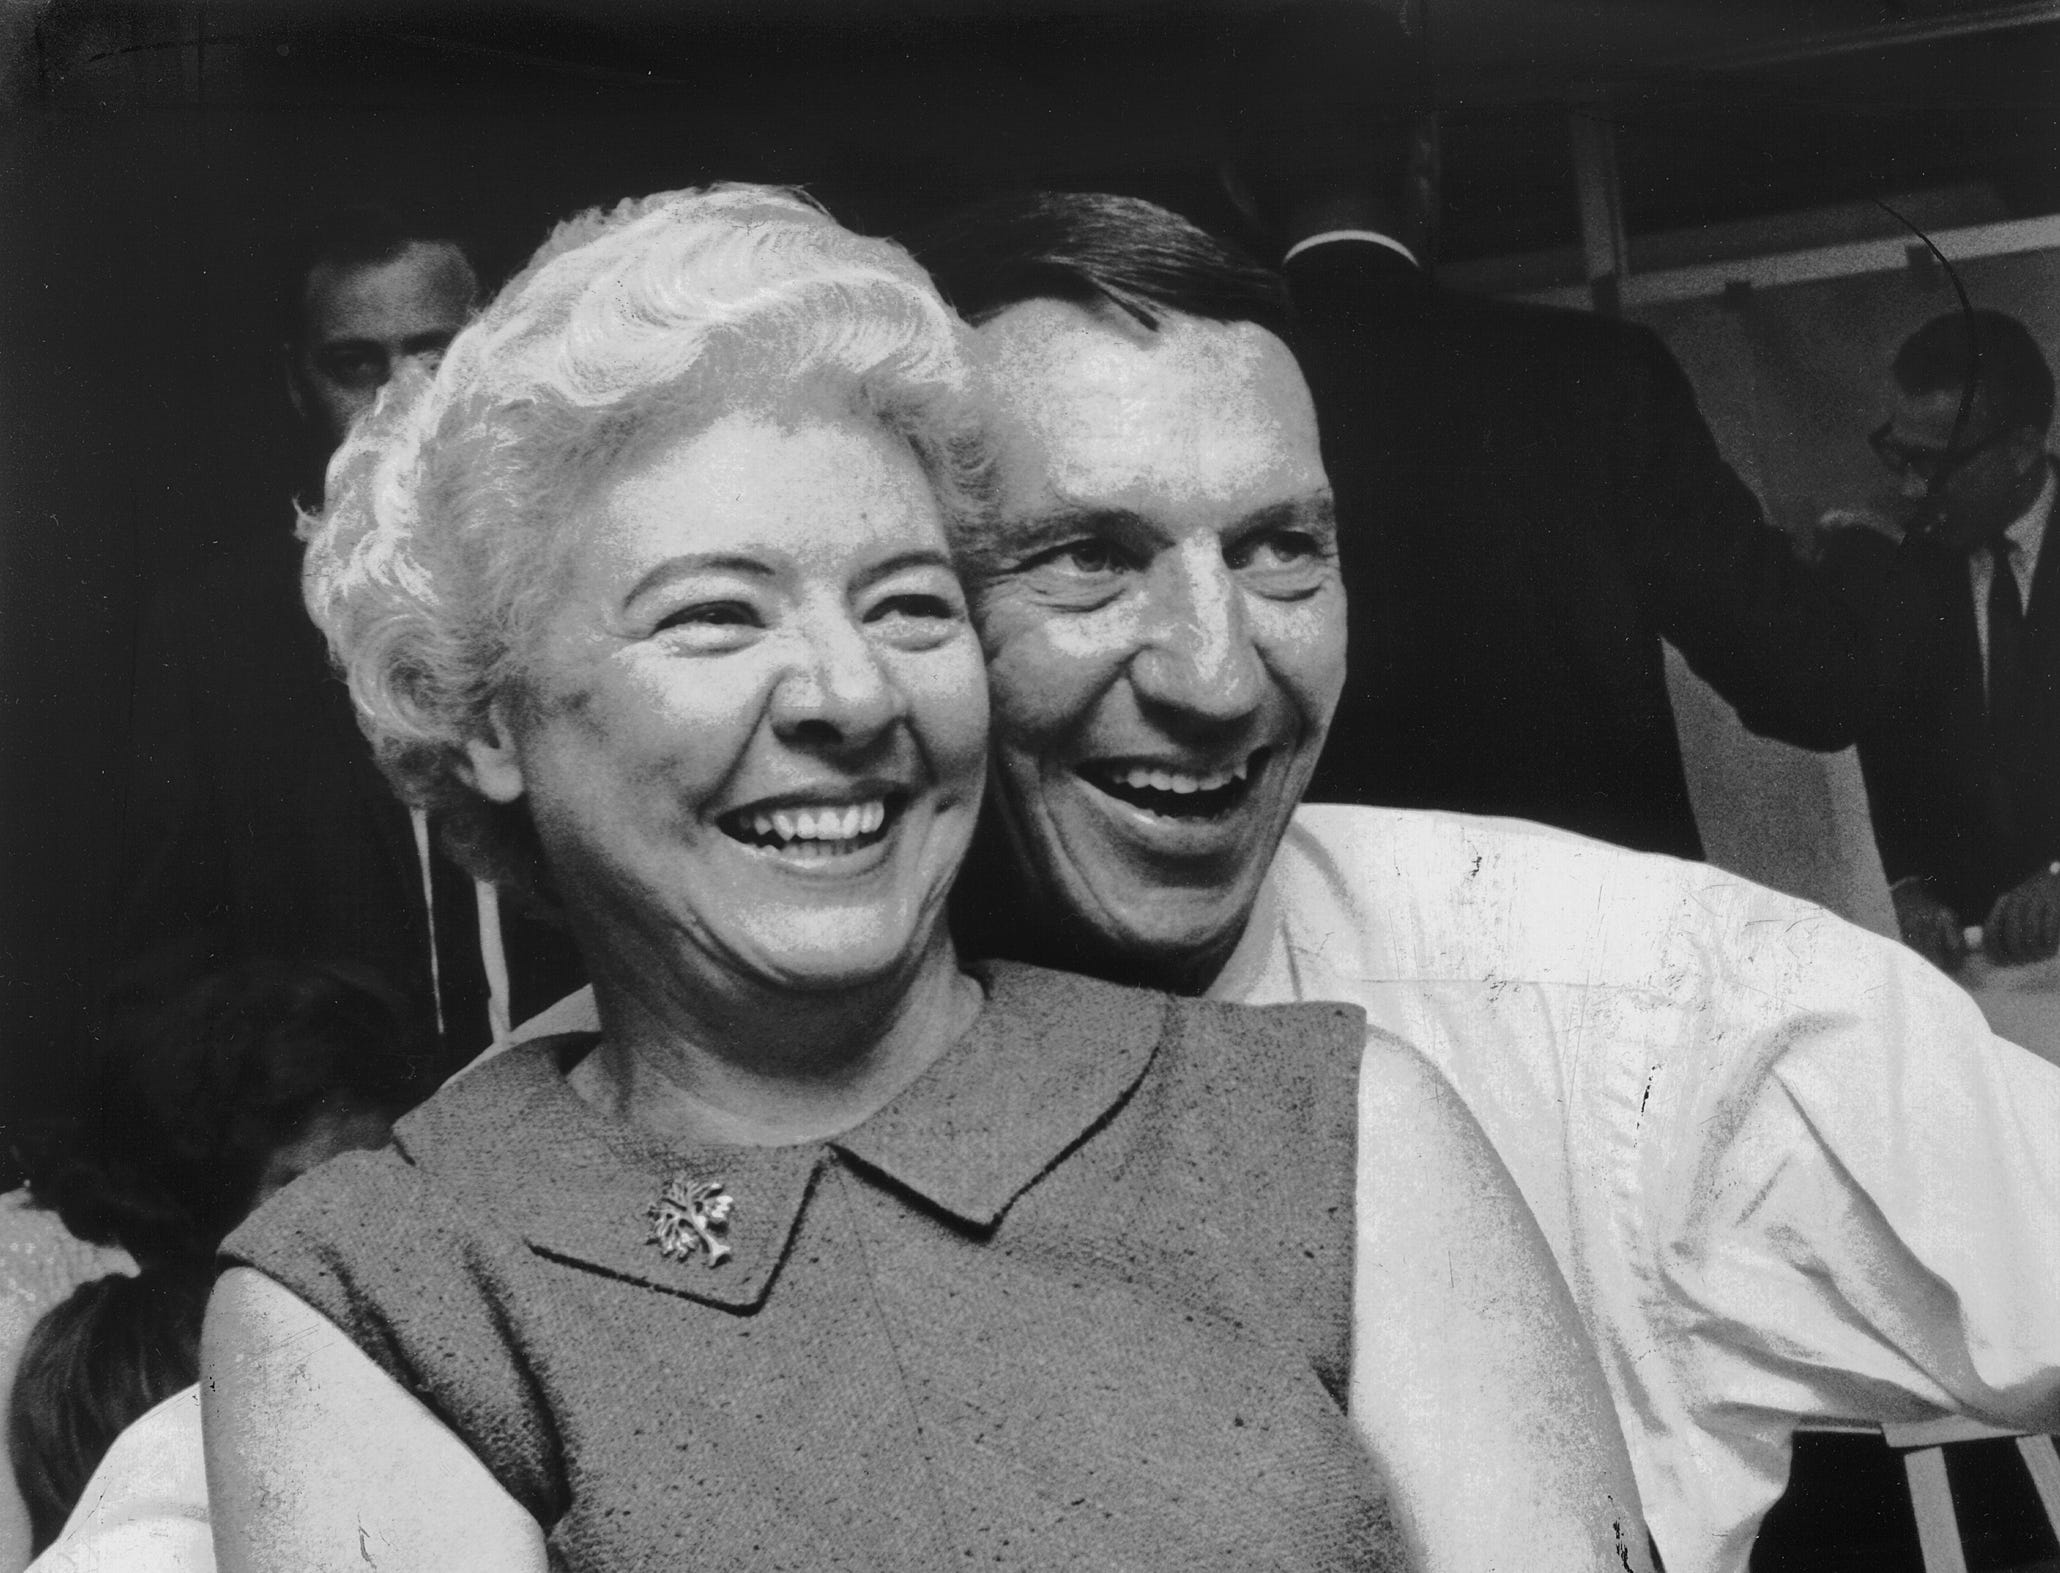 Janet and Downing Pryor were all smiles as they embraced at his campaign headquarters on October 6, 1967, as he led his race for City Council, Position 6 At Large. He apparently will face Tracey Rainey in the November 2 runoff. Other leading vote getters were Jerred Blanchard, Lewis Donelson III and Robert James, who won without a runoff.